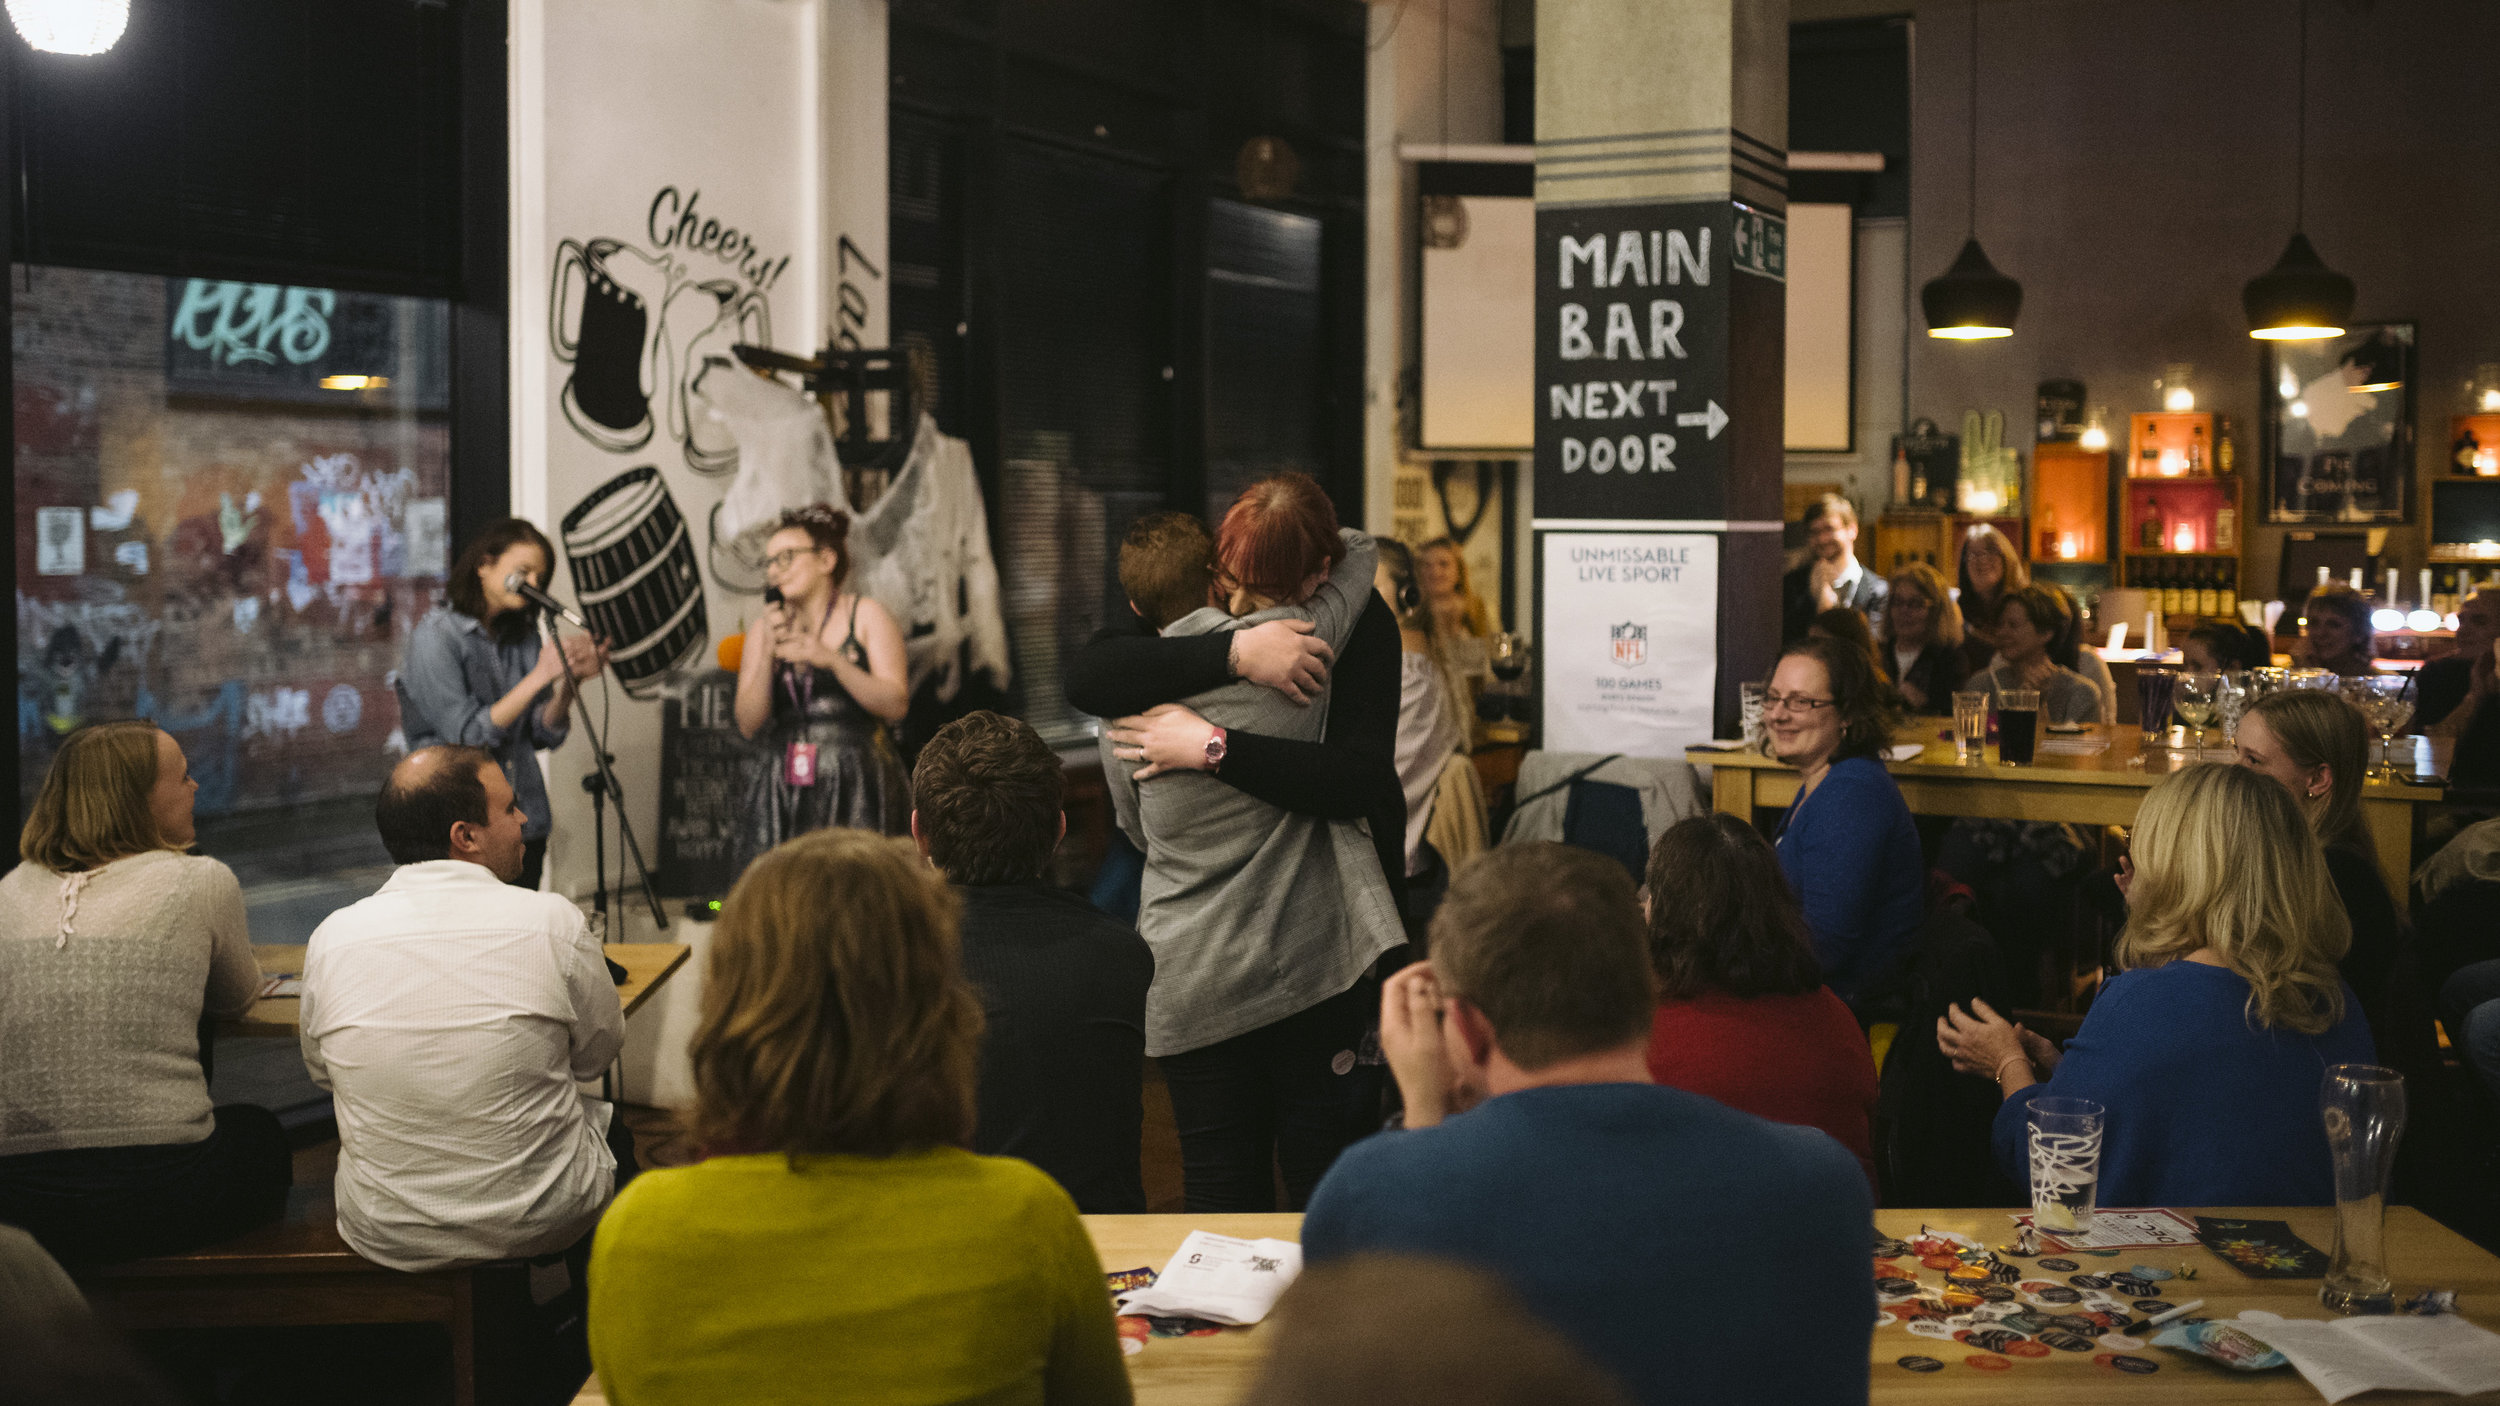 Charlotte Istance-Tamblin shares a hug with her wife at the Pie and Ale during the Manchester Science Festival in October, 2018. Photo by Drew Forsyth.